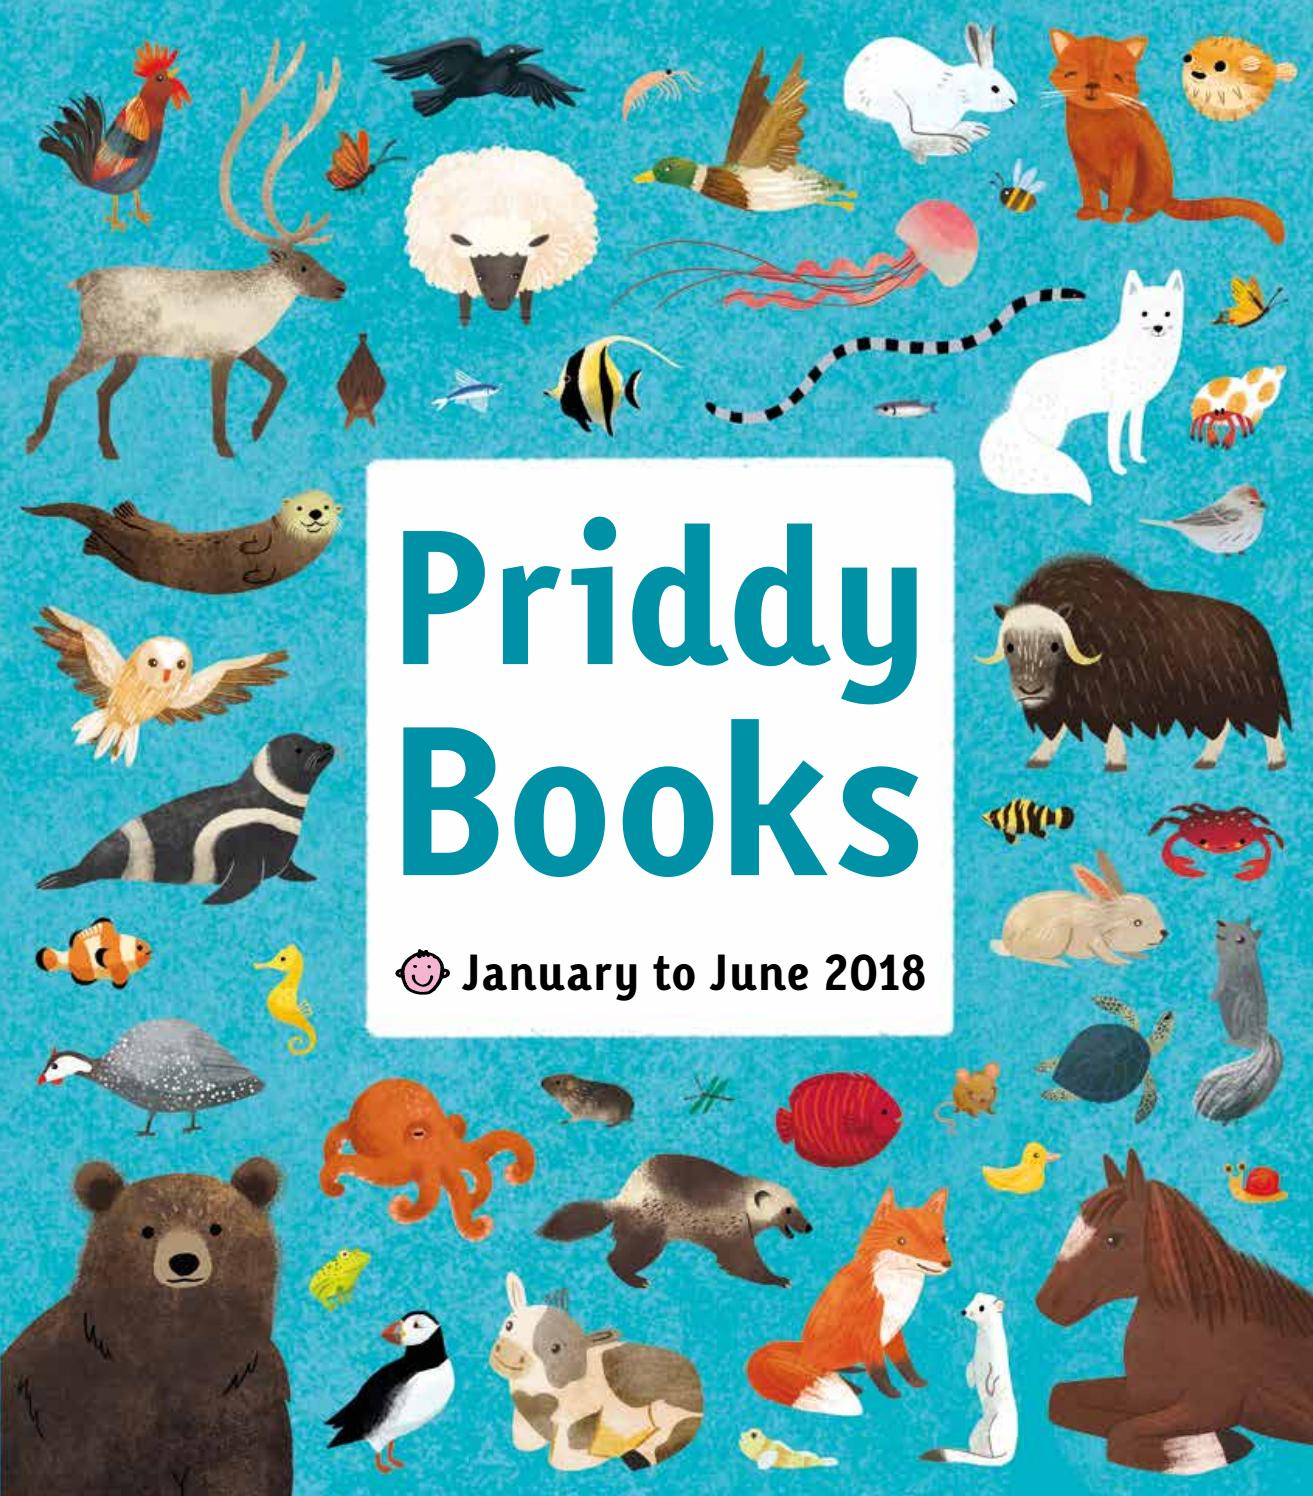 Priddy Books Catalogue Januaryjune 2018 By Issuu Alphaprints Happy Dog